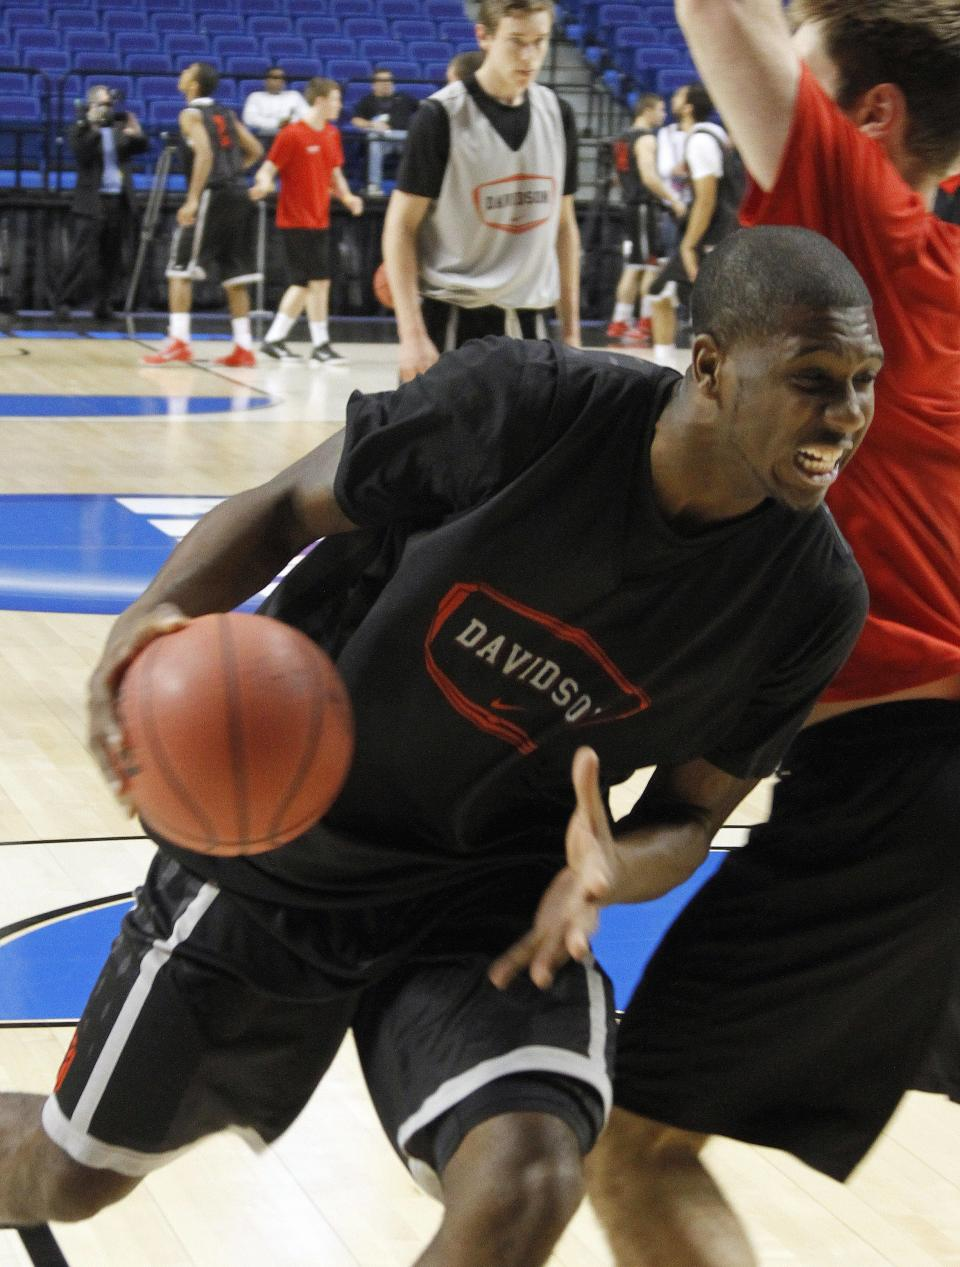 Davidson forward De'Mon Brooks drives during practice for the second round of the NCAA college basketball tournament Wednesday, March 20, 2013, in Lexington, Ky. Davidson will play Marquette Thursday. (AP Photo/James Crisp)